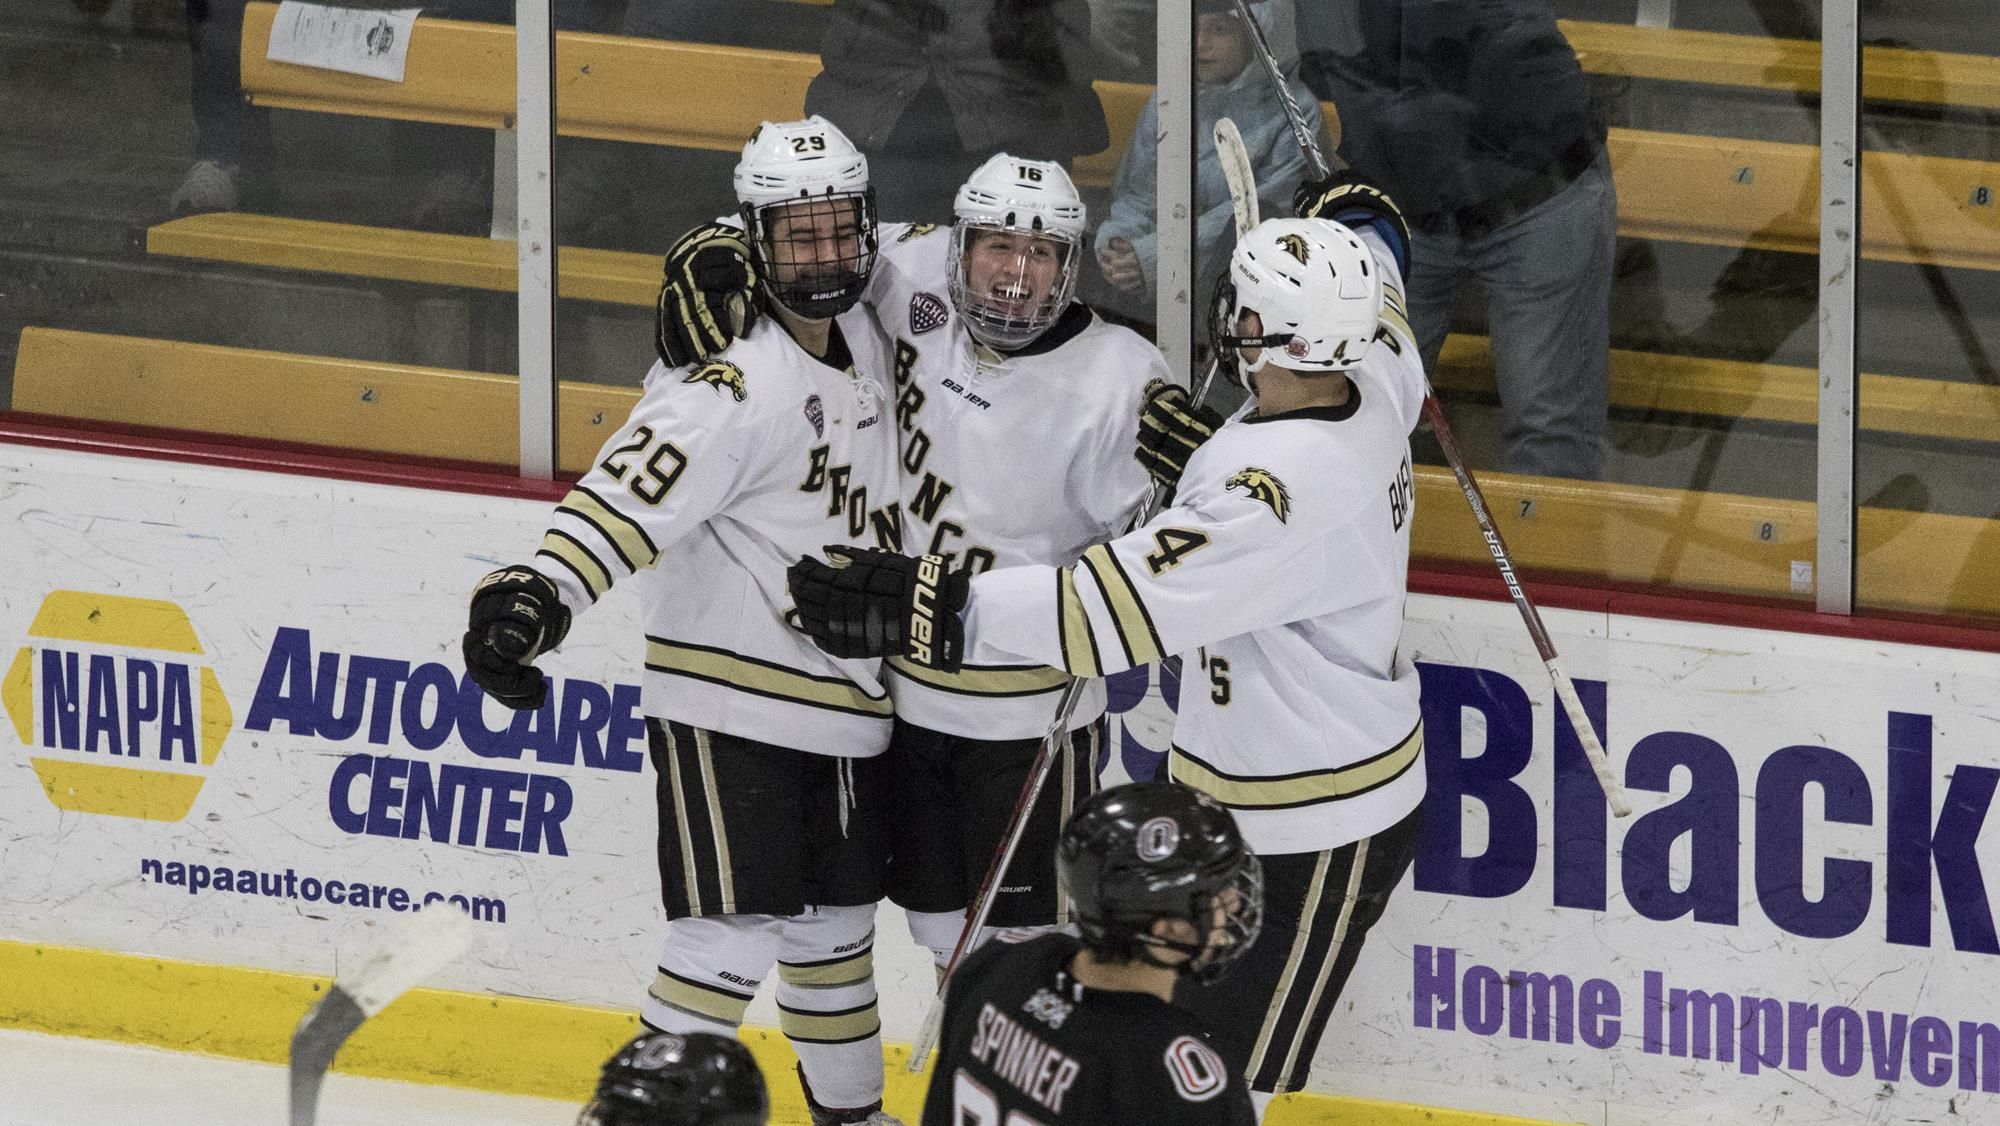 Hockey Hosts Wilfrid Laurier For Annual Border Battle Game